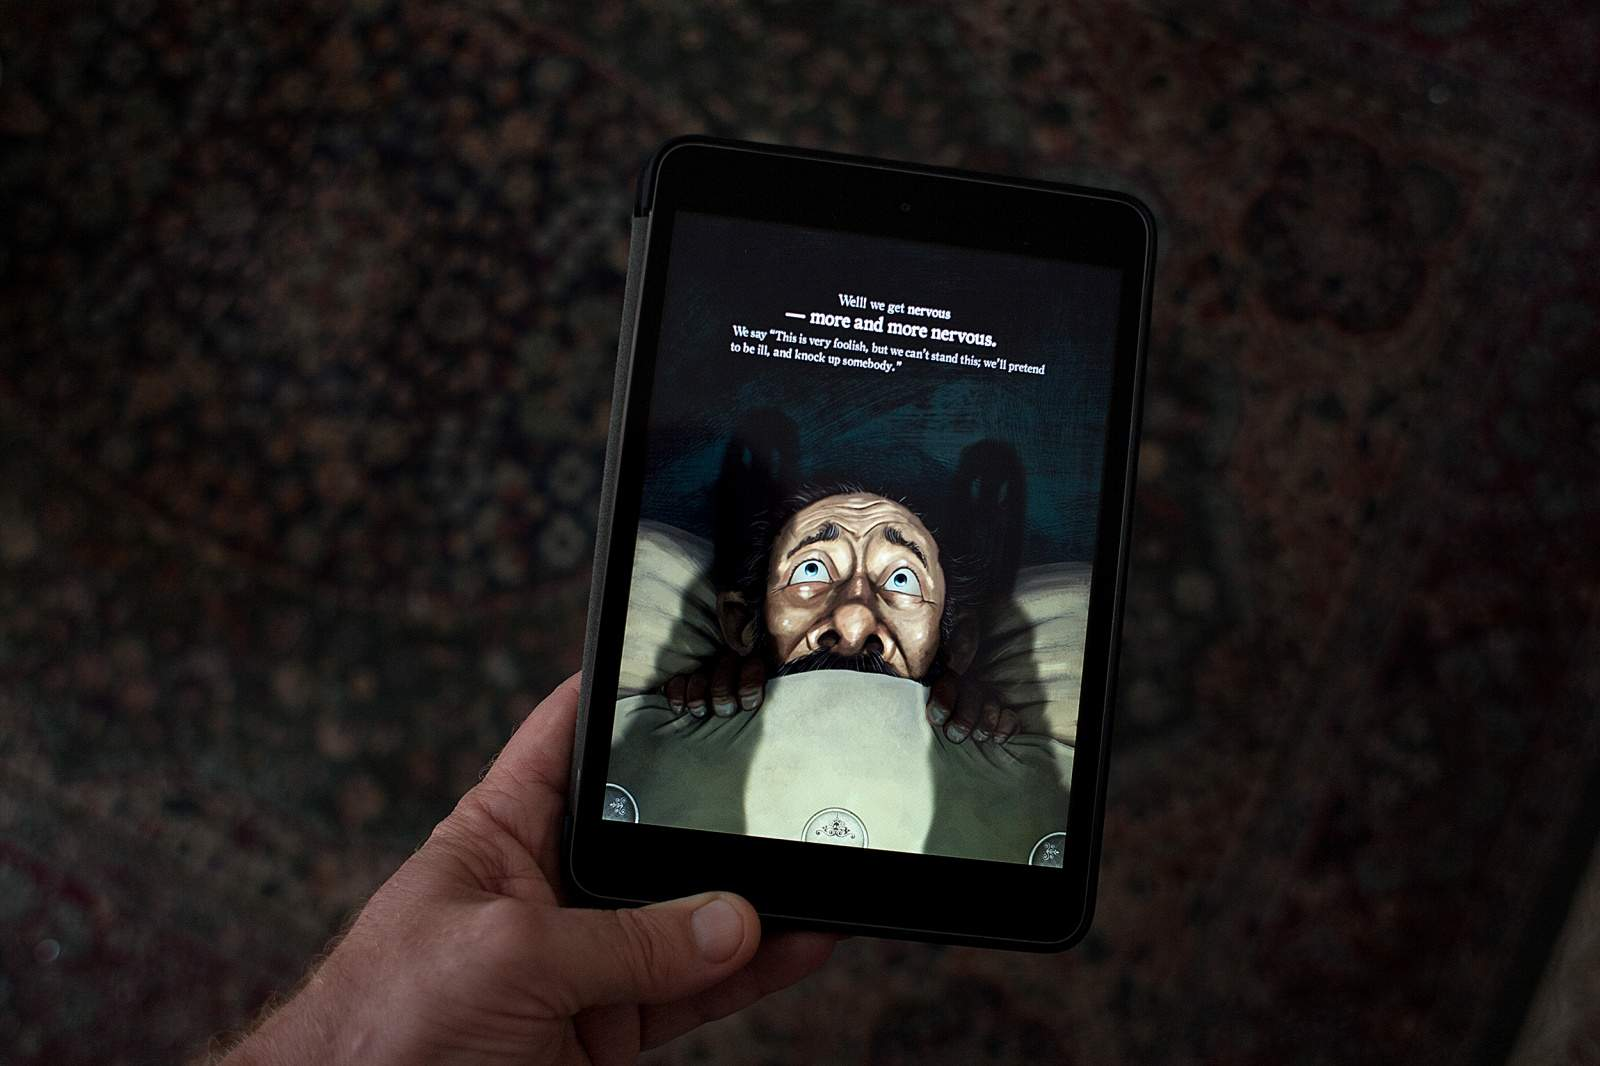 Gently move the iPad and watch the frightened  Charles Dickens character  pull the covers tighter.